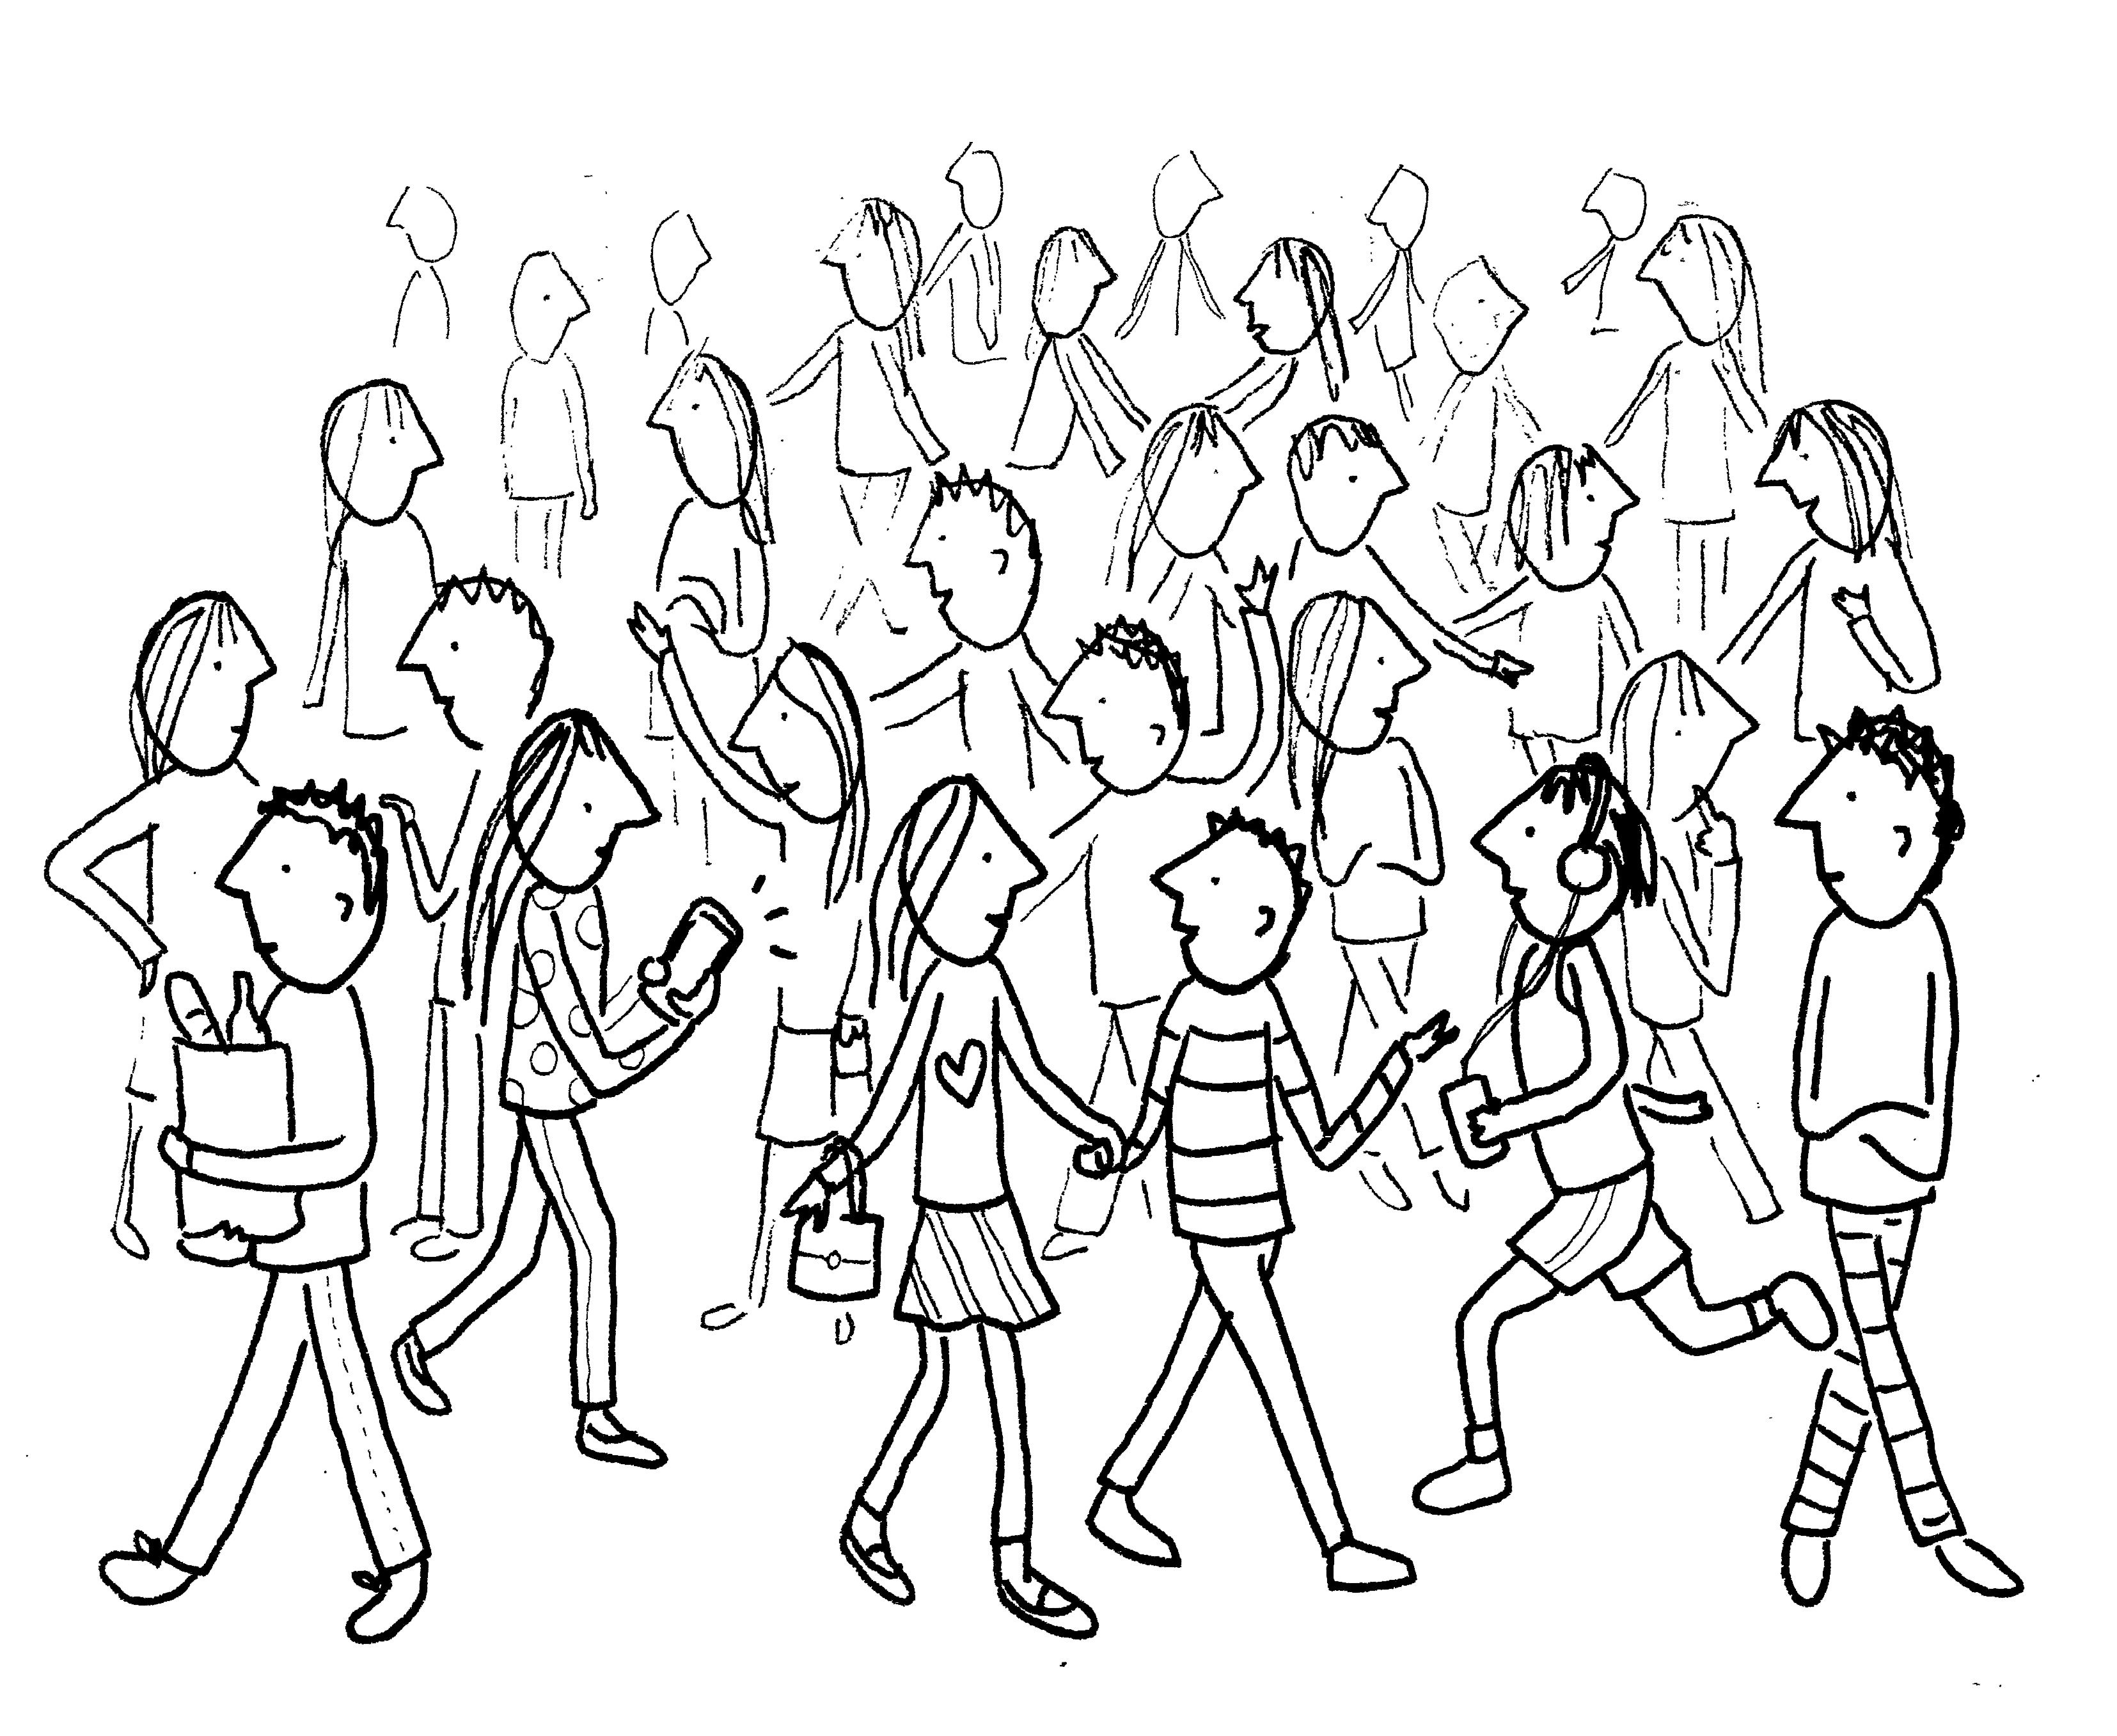 3310x2714 How To Draw A Crowd Of People In 3 Steps Crowd, Drawings